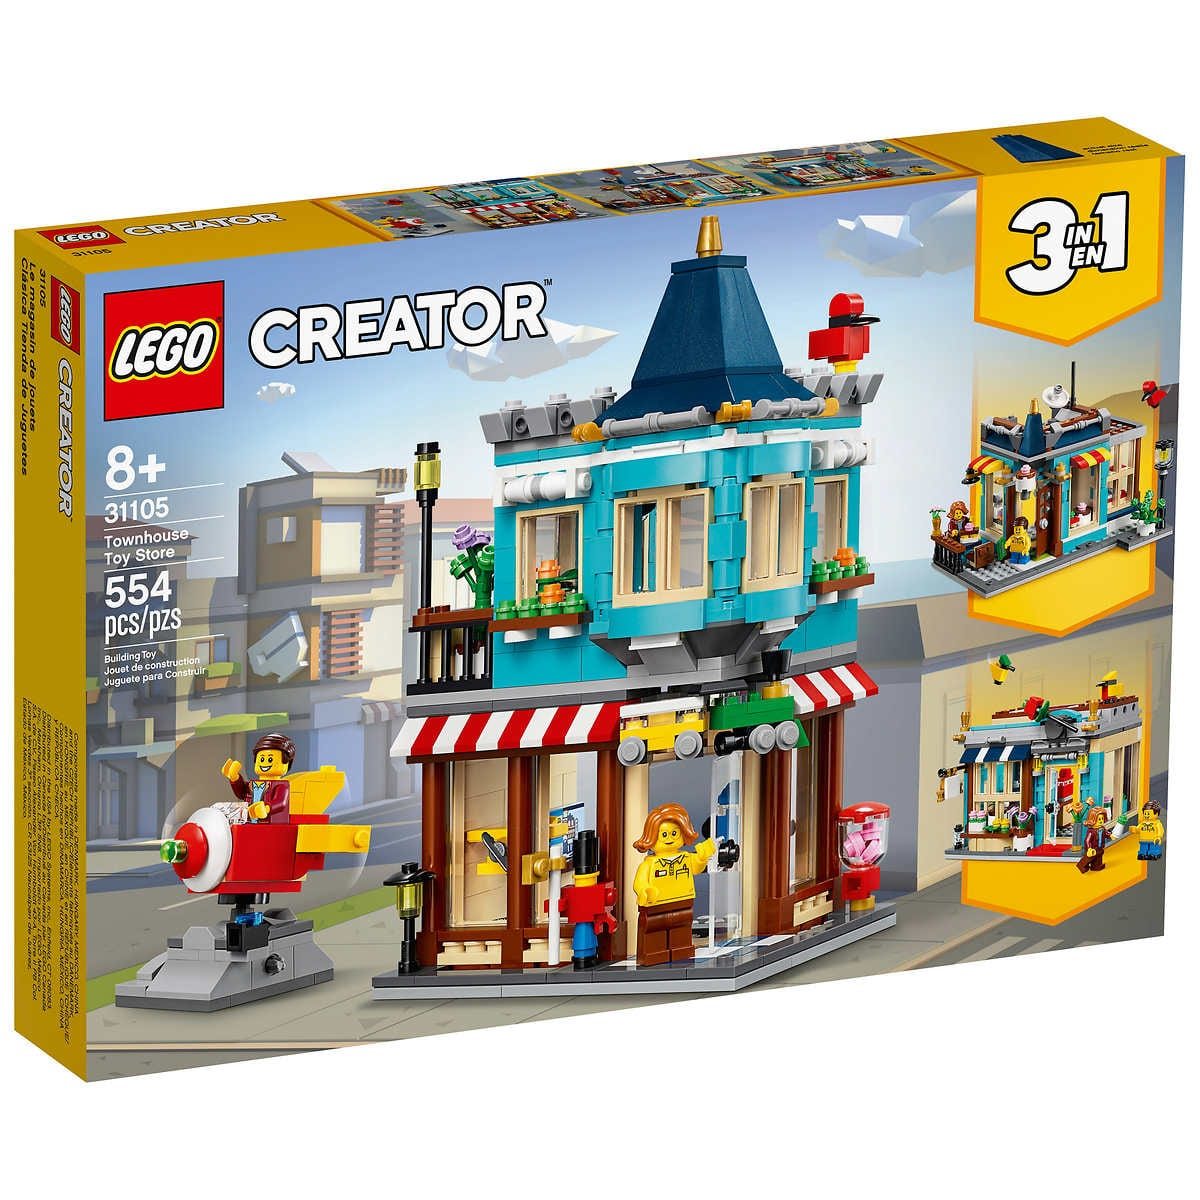 Lego Set 31105 - Creator TownHouse / Toy Store Ages 8+ 554 Pieces $29.97 Shipped Costco.com